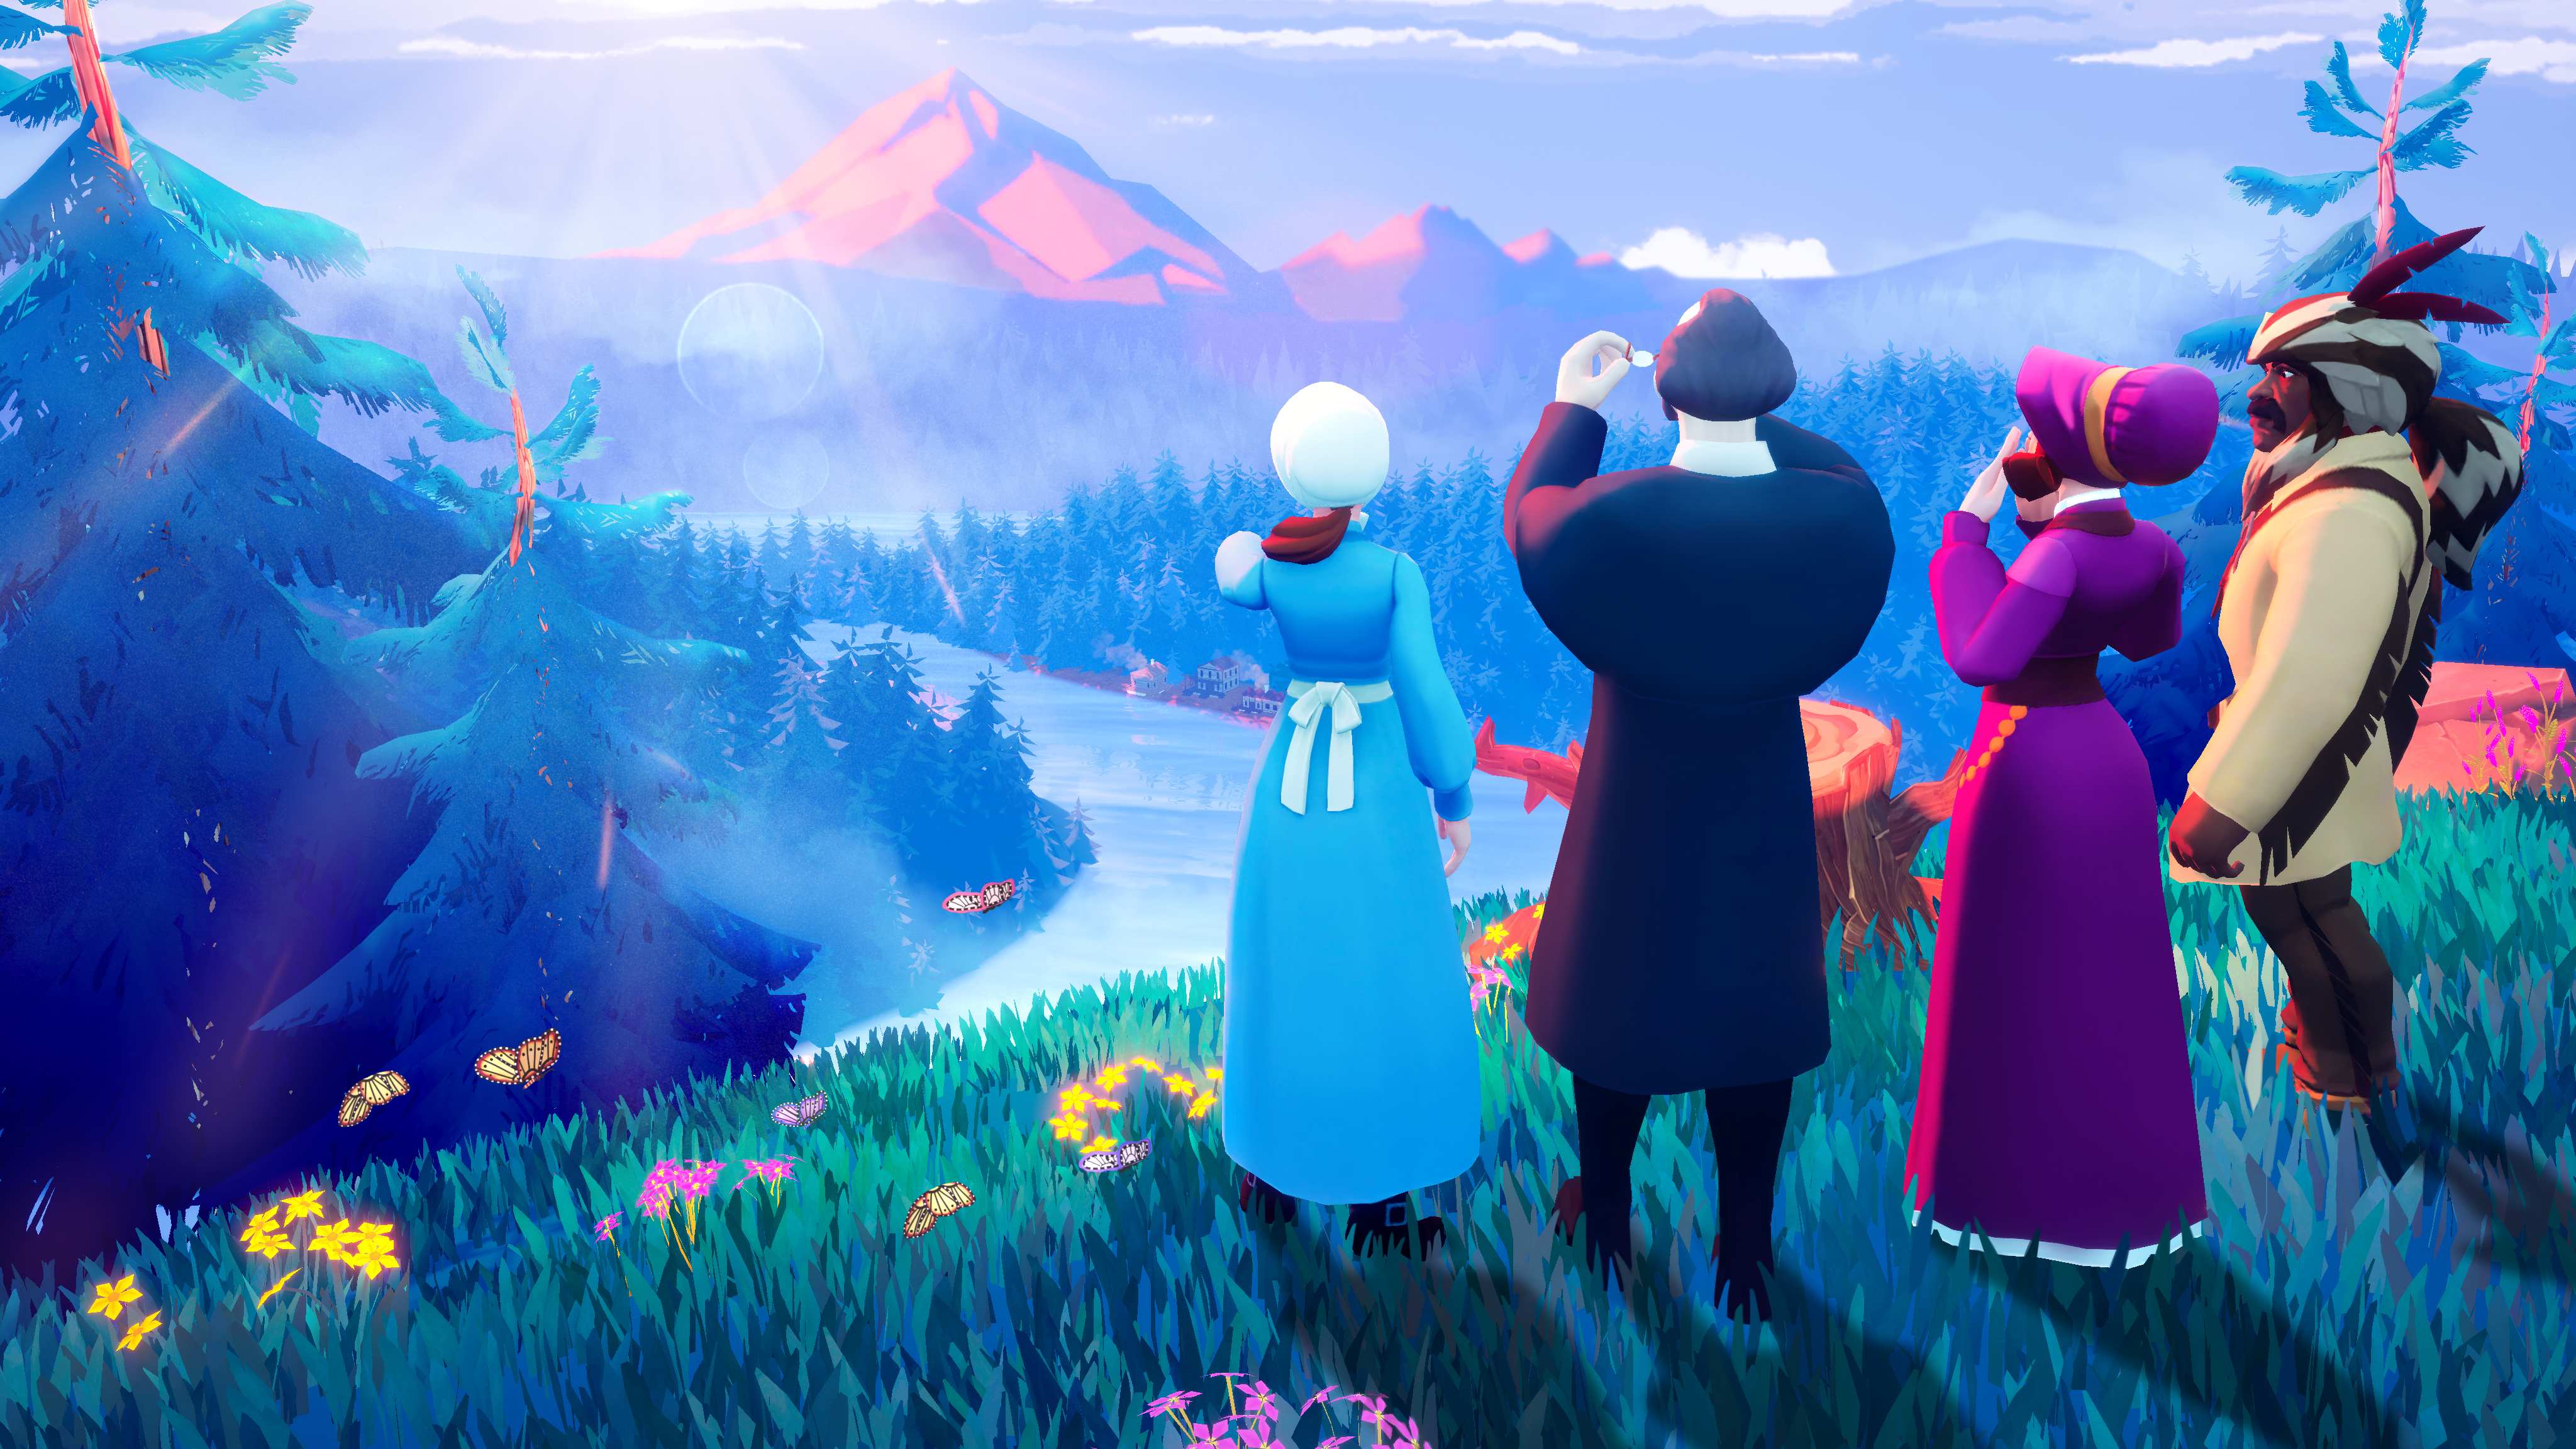 A new version of the Oregon Trail game for Apple Arcade features improved Native American representation and new playable Native American characters and storylines.